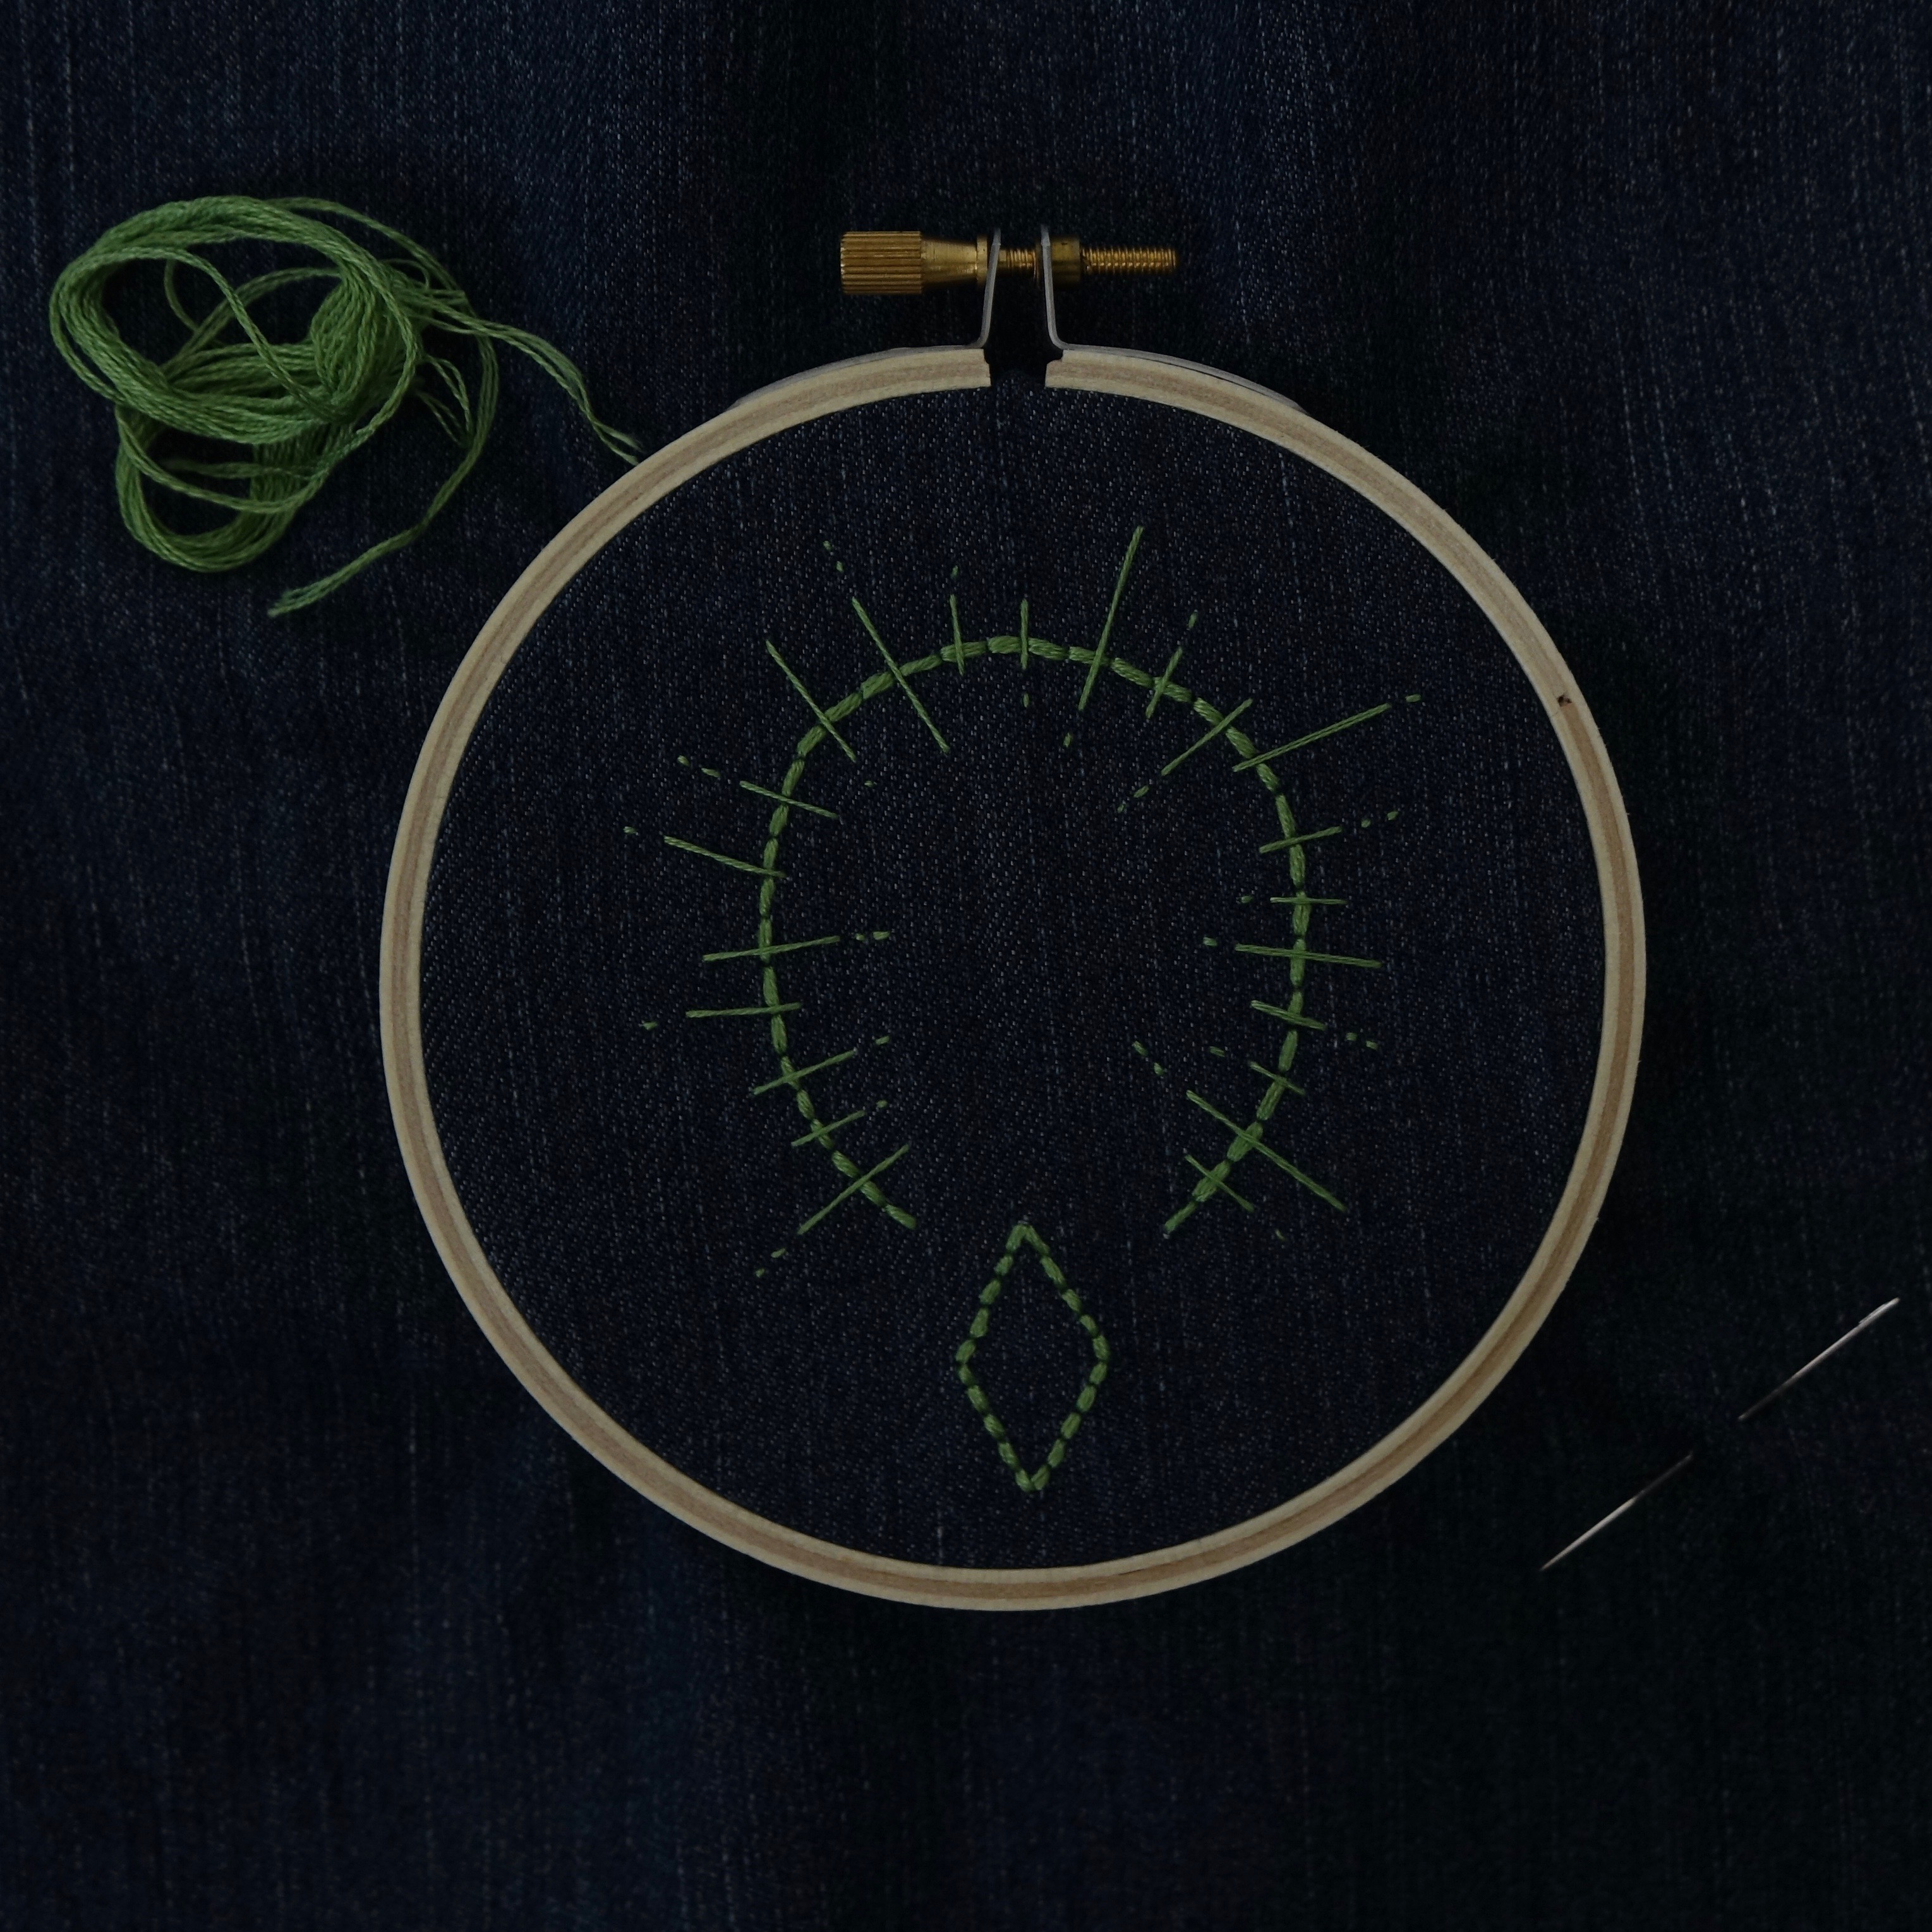 An embroidery hoop set with dark denim, in pale green a diamond embroidered at the bottom of the hoop, an arch bisected by dash-ended bars.